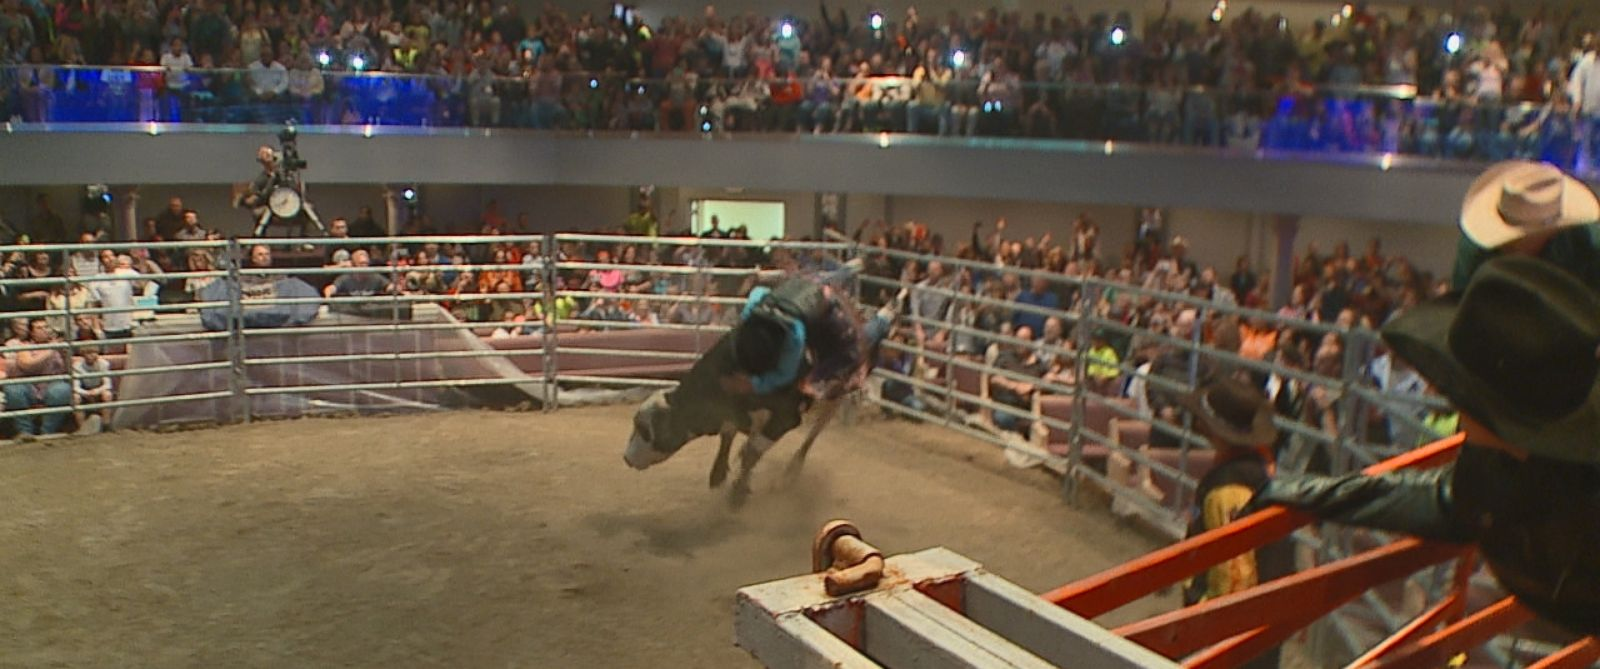 Pastor Lawrence Bishop II rode a bull in front of his congregation at the Solid Rock Church in Monroe, Ohio.